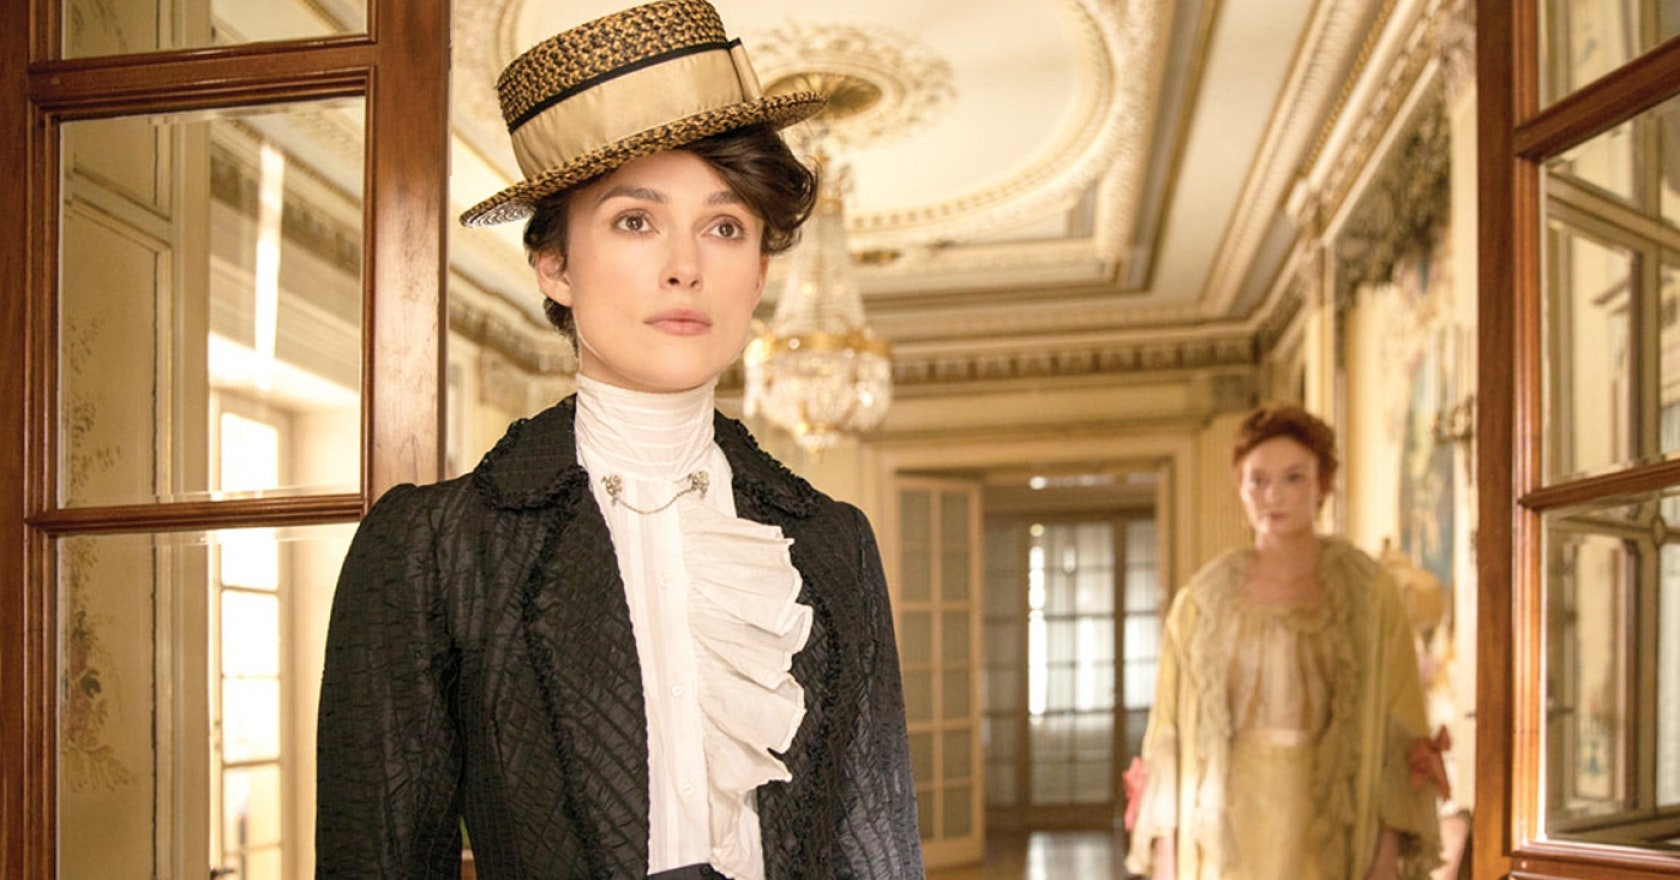 Film Review | Colette starring Keira Knightley